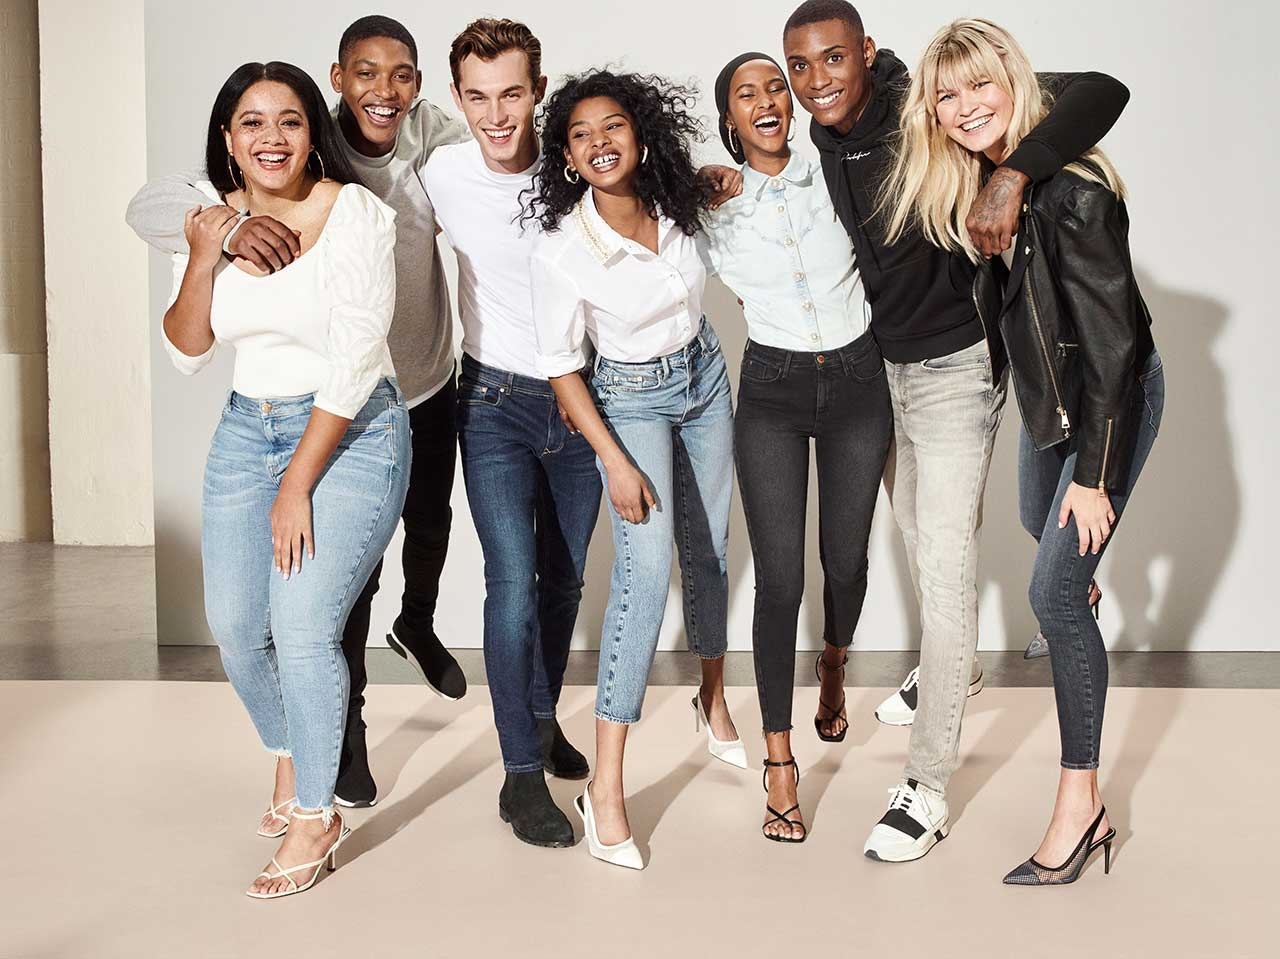 River Island partners with KMI Brands